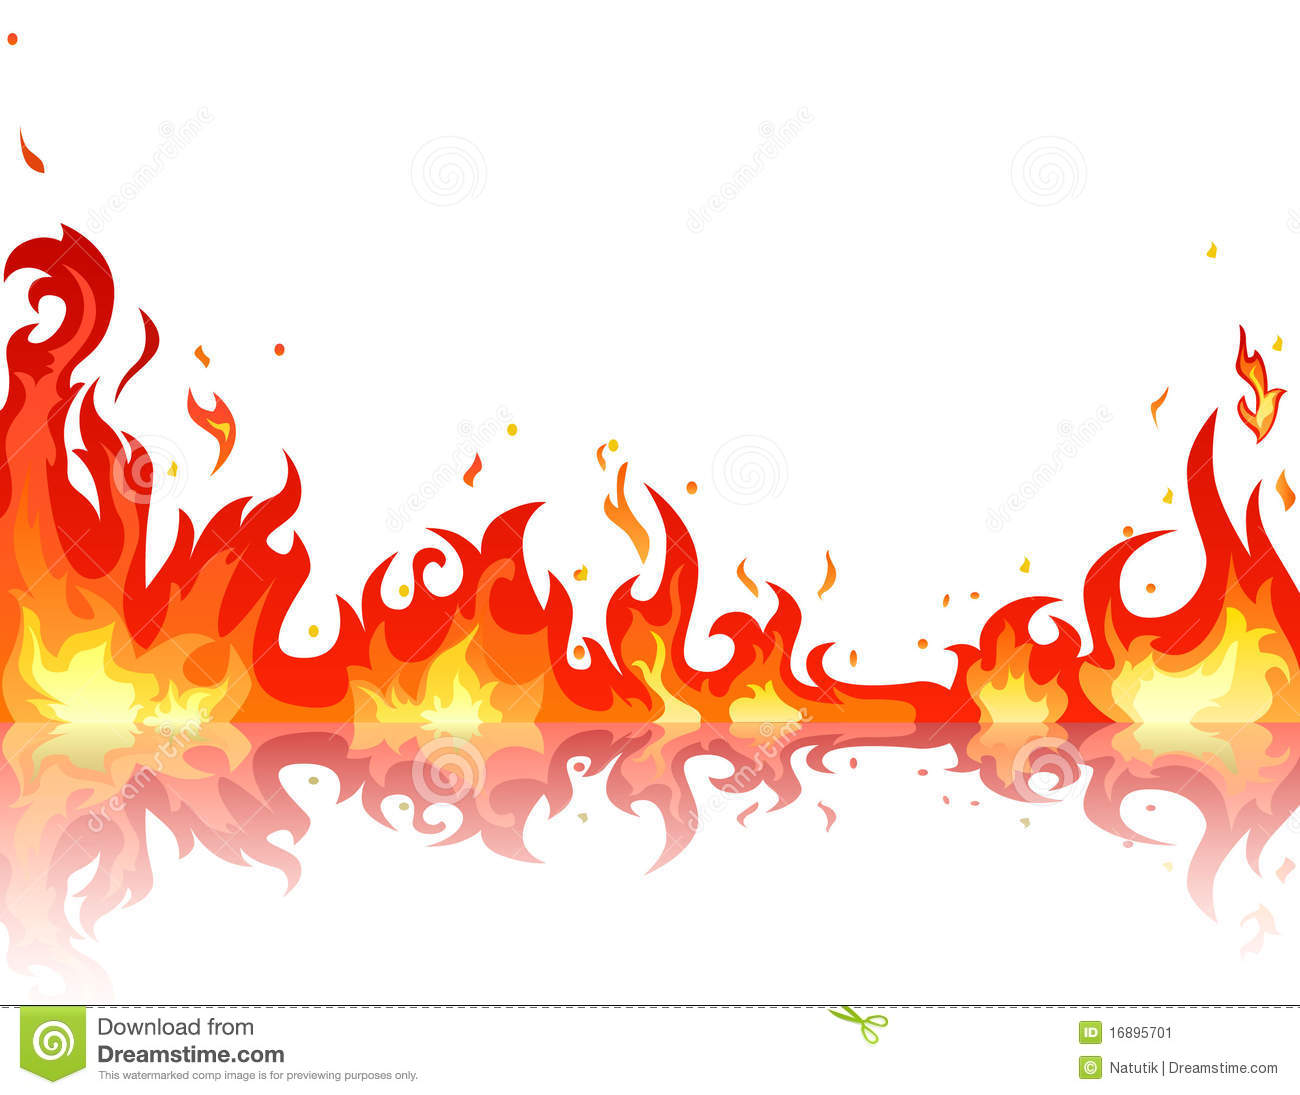 Reflected fire flame